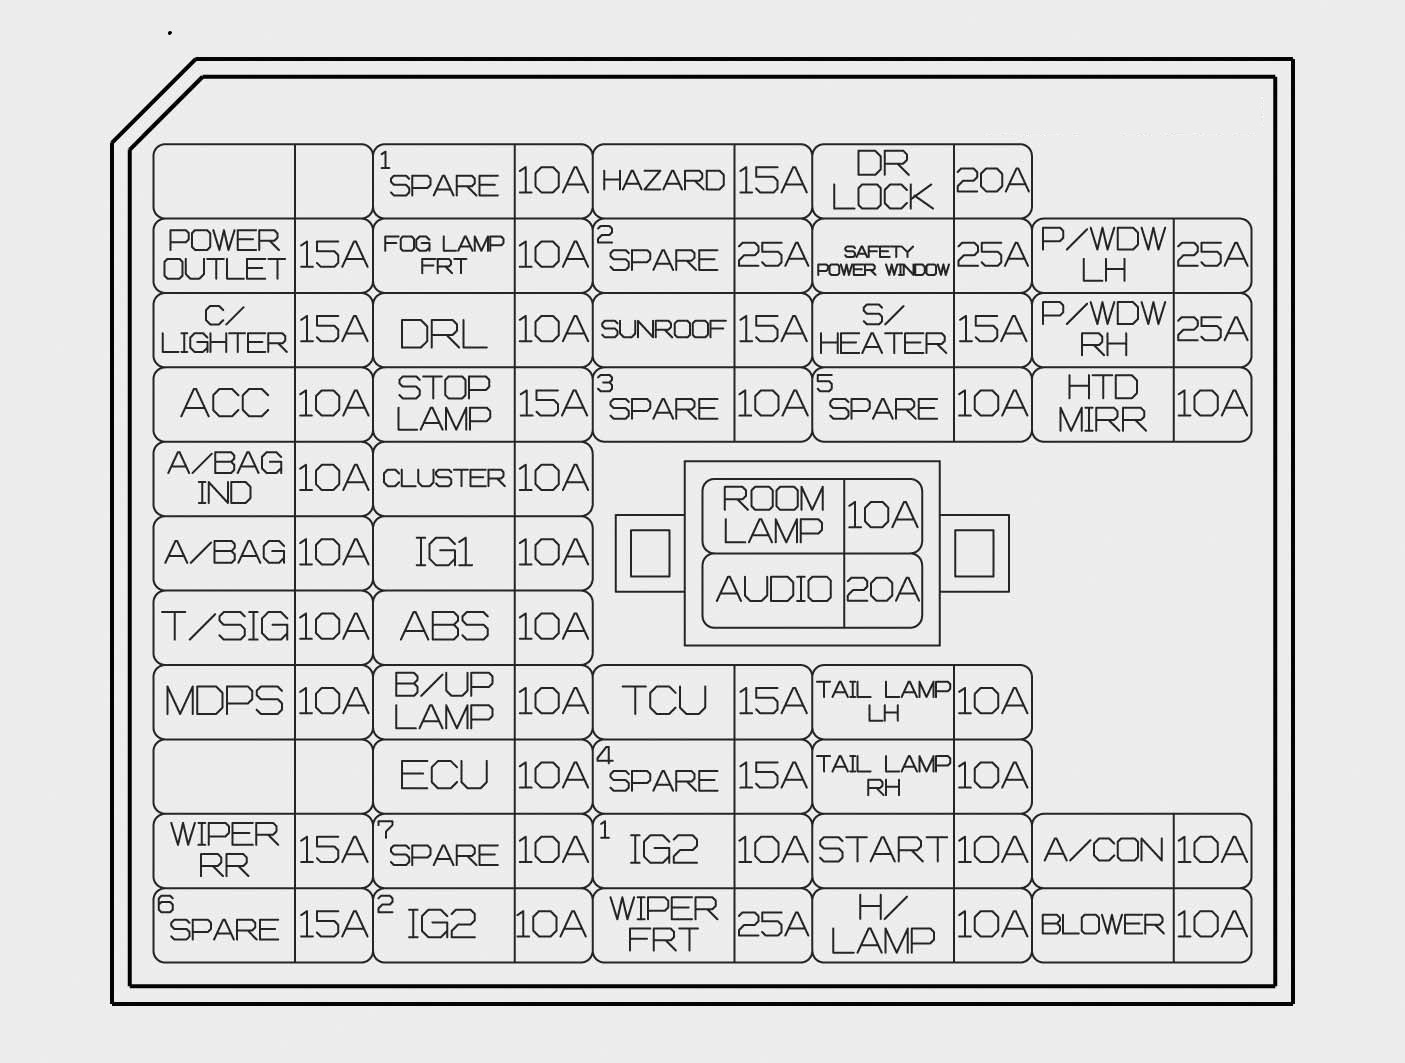 hyundai sonata fuse box diagram 1999 hyundai sonata fuse box diagram basic fuse box 2012 hyundai sonata - wiring diagram